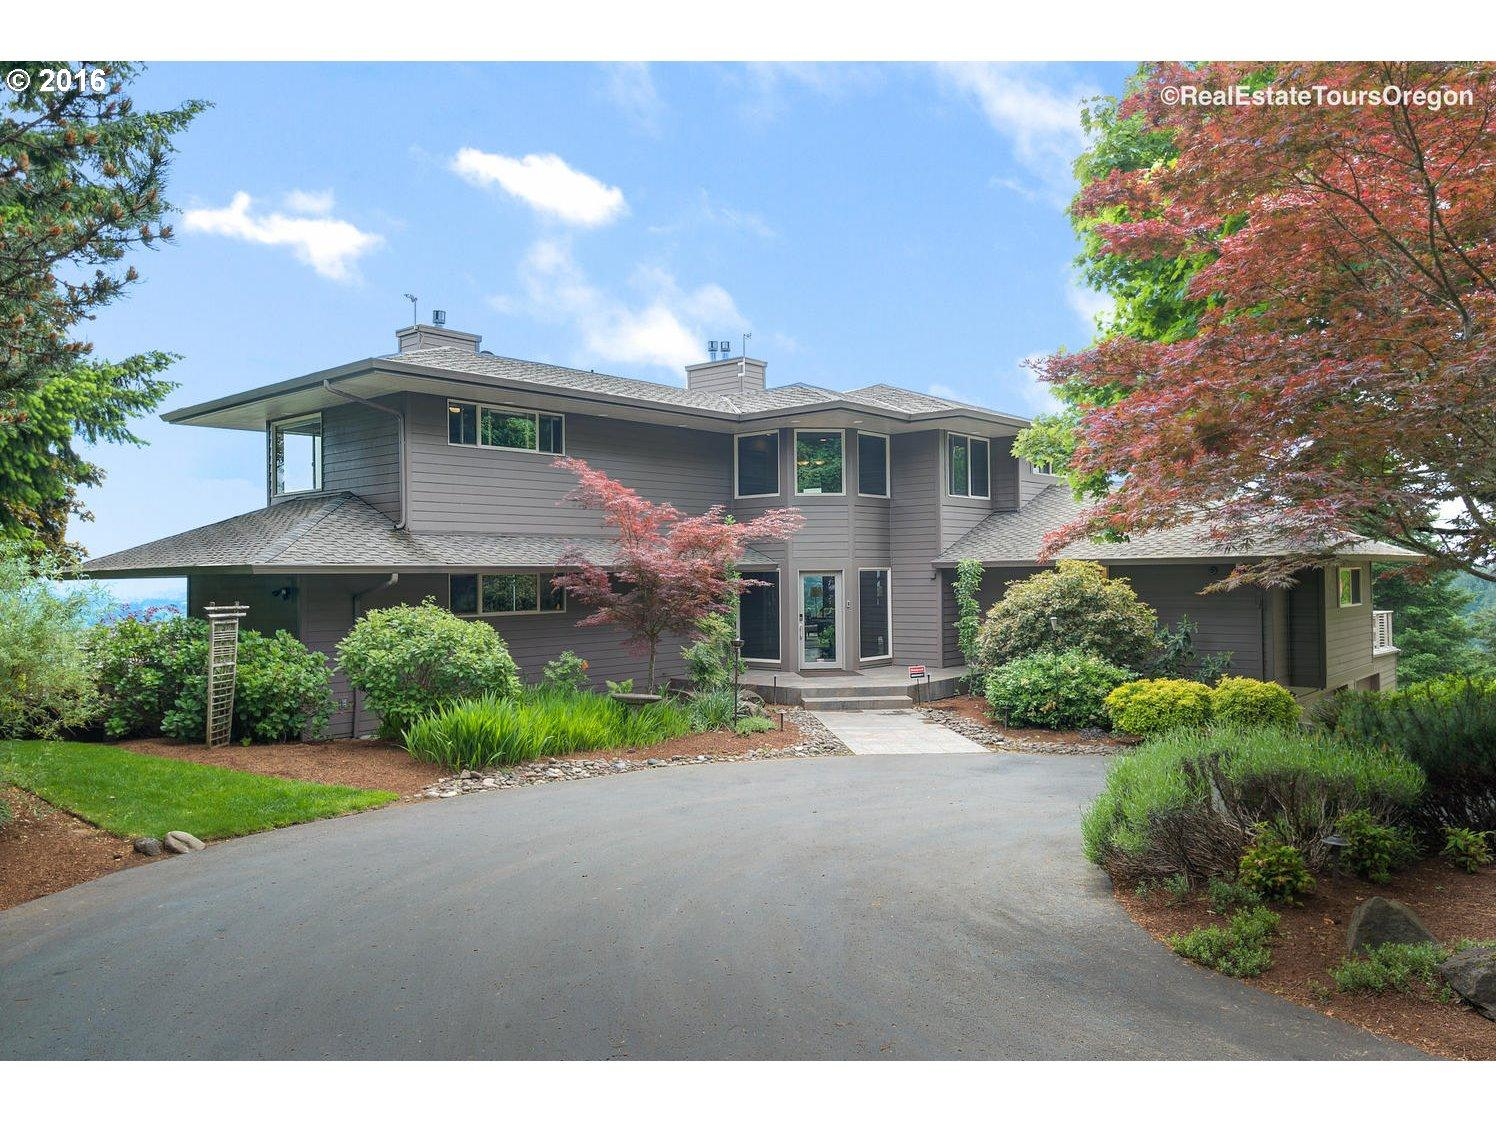 45585 Nw David Hill Rd Forest Grove Or 97116 5 Bed 5 Bath